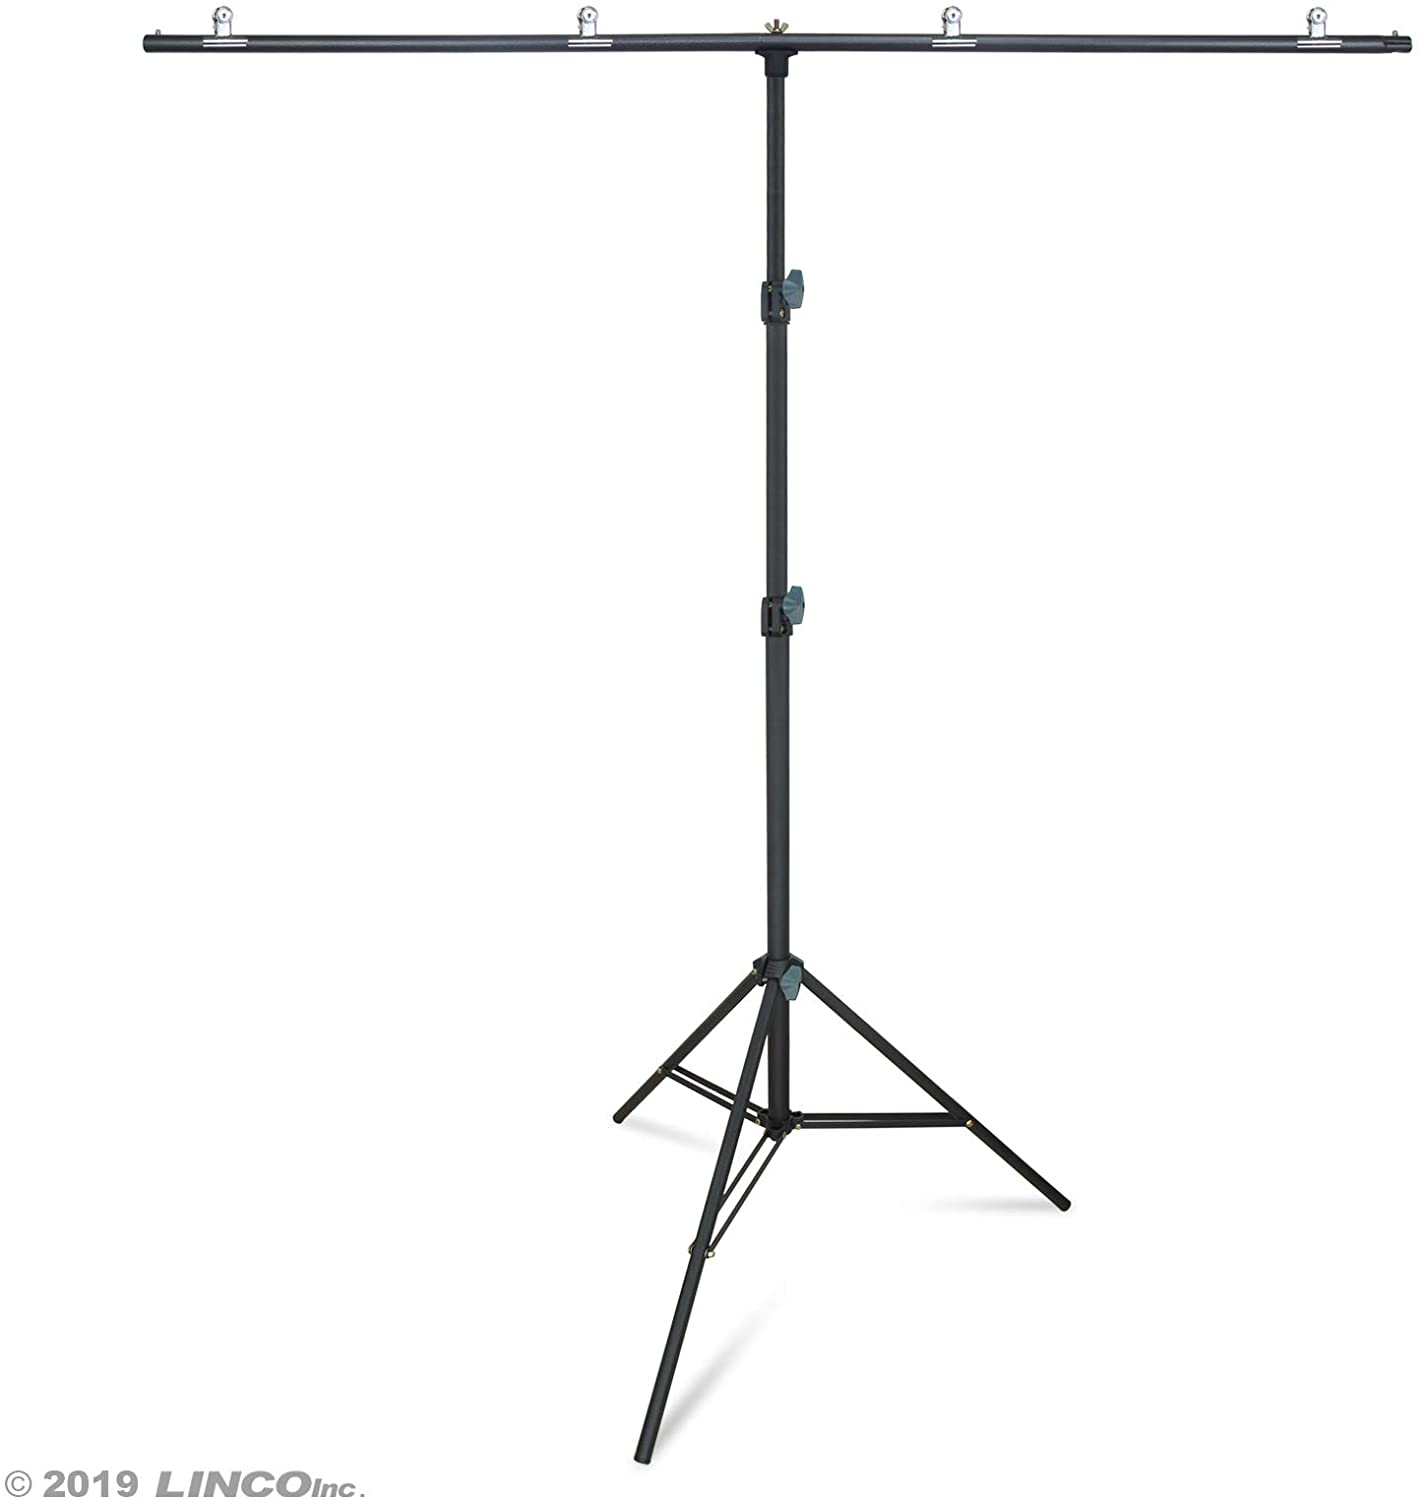 Linco Lincostore 5x6.7ft. Backdrop Stand